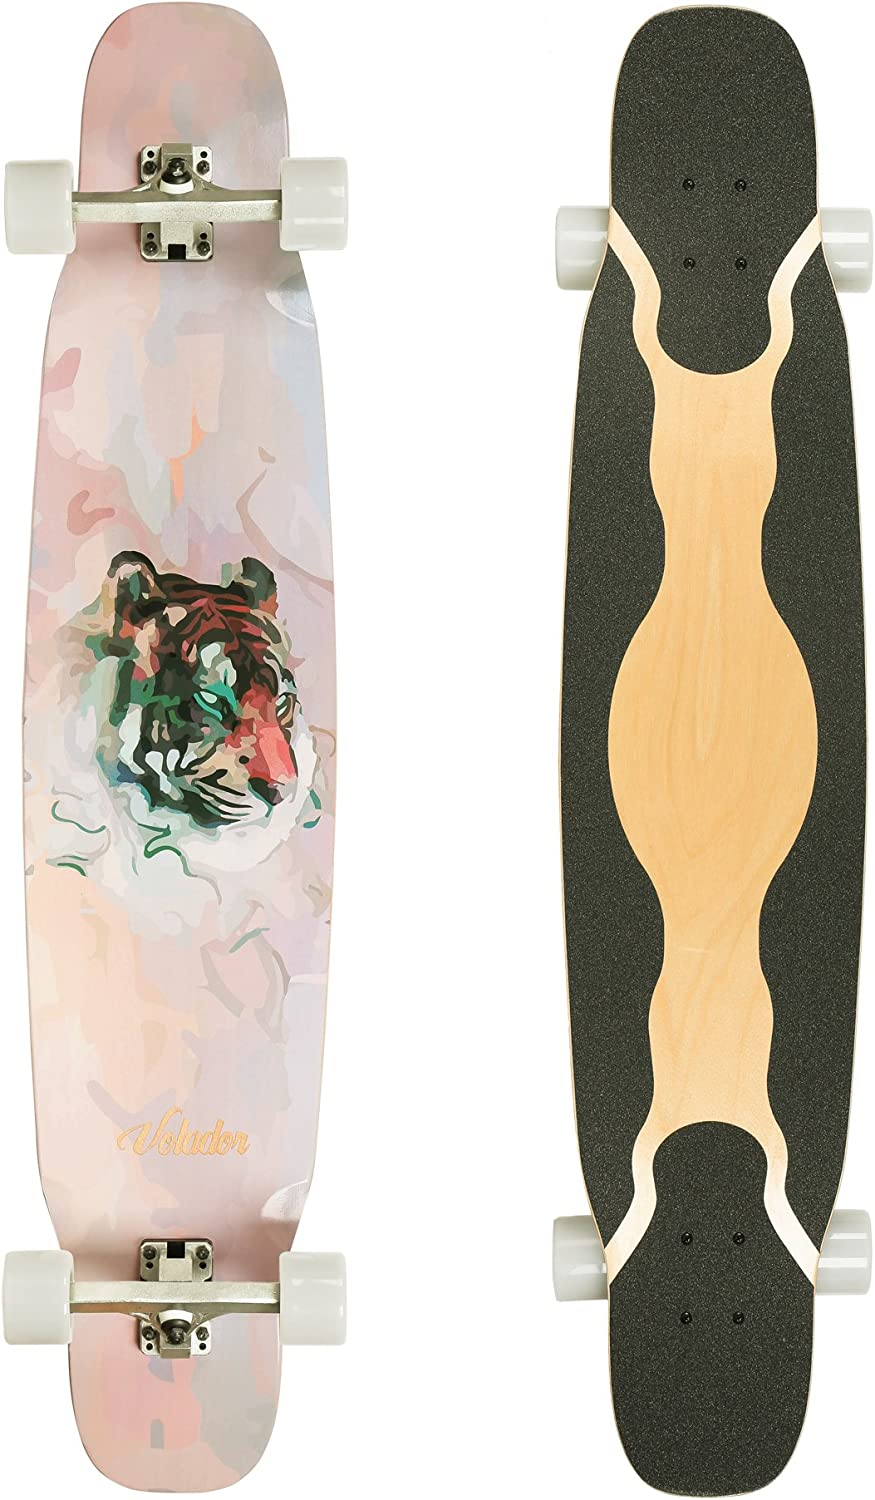 VOLADOR 46inch Maple Dancing Longboard